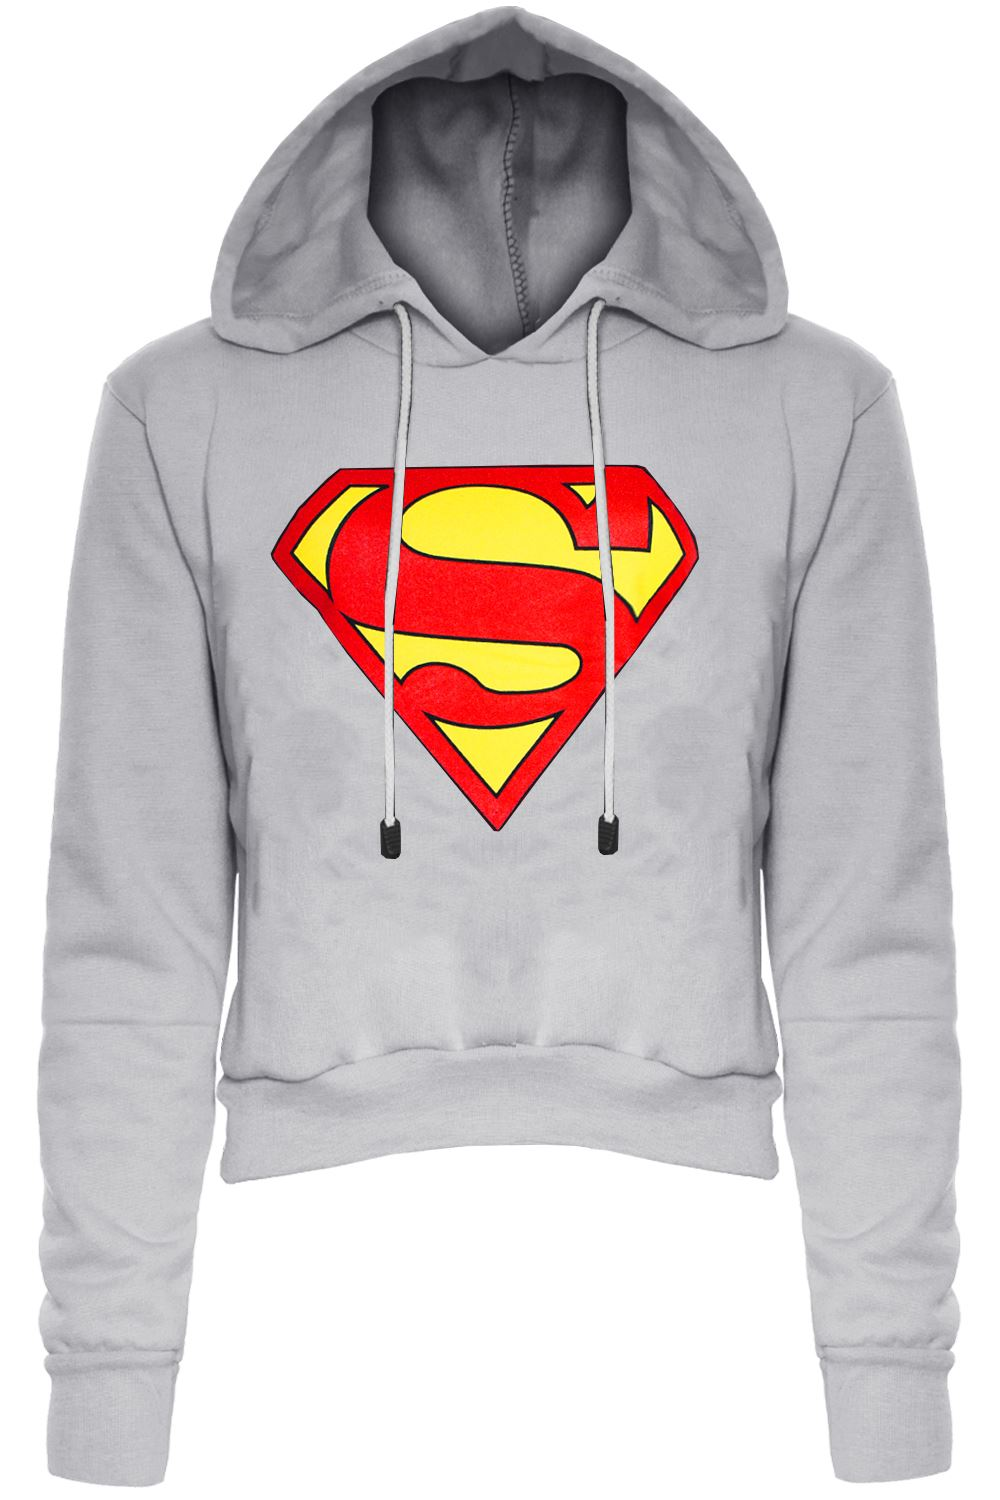 Superman Hoodies & Sweatshirts Check out our incredibly warm and fashionable Superman Hoodies and Sweatshirts for men, women, and kids! Without the benefit of Superman's always temperate super-skin, you'll need some warmer clothing in order to tolerate your stay at the Fortress of Solitude.